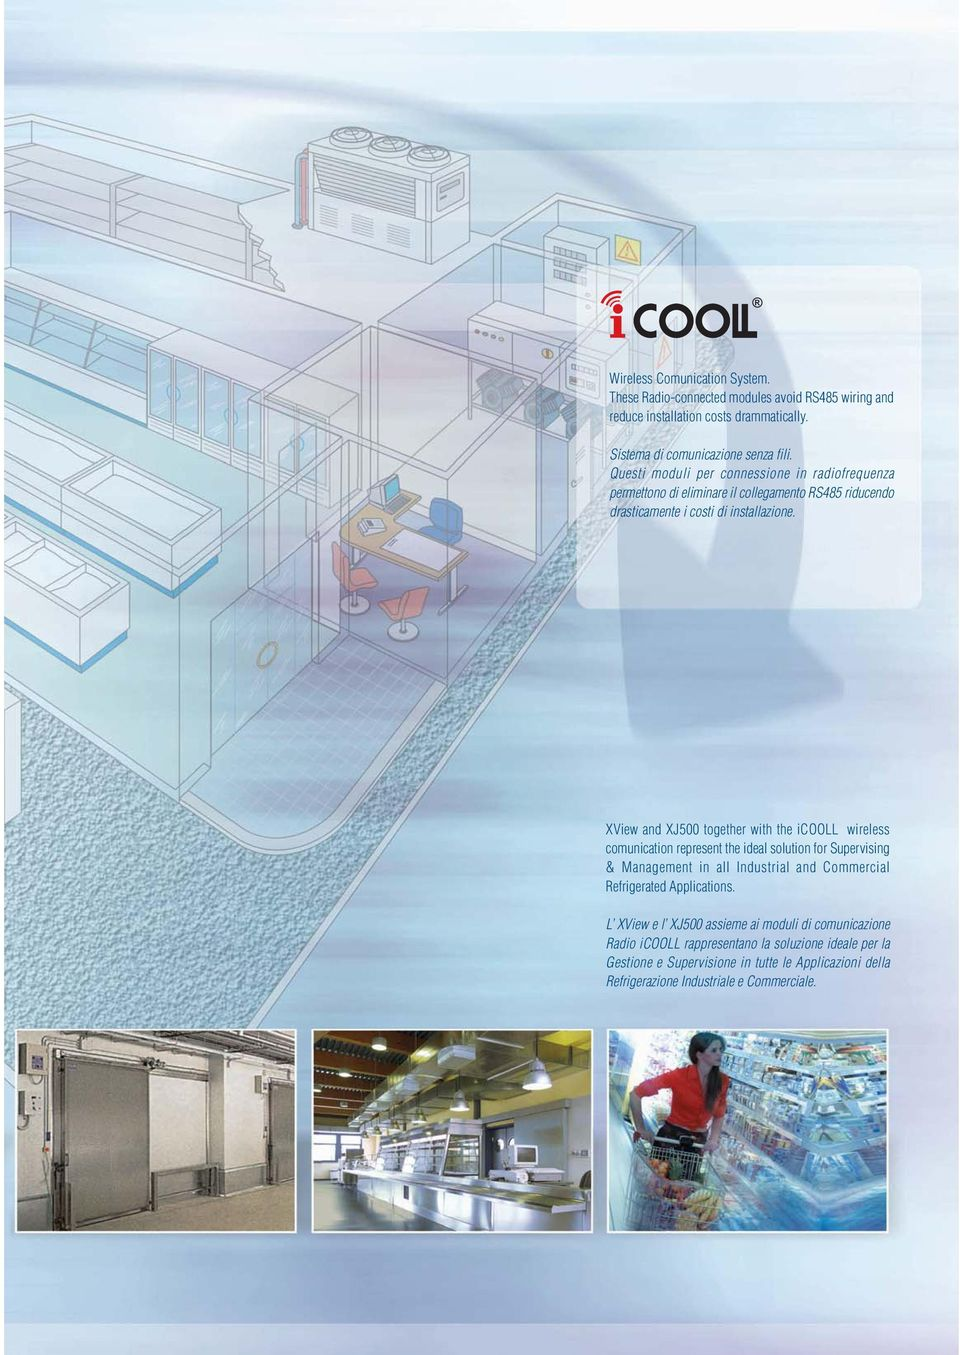 XView and XJ500 together with the icooll wireless comunication represent the ideal solution for Supervising & Management in all Industrial and Commercial Refrigerated